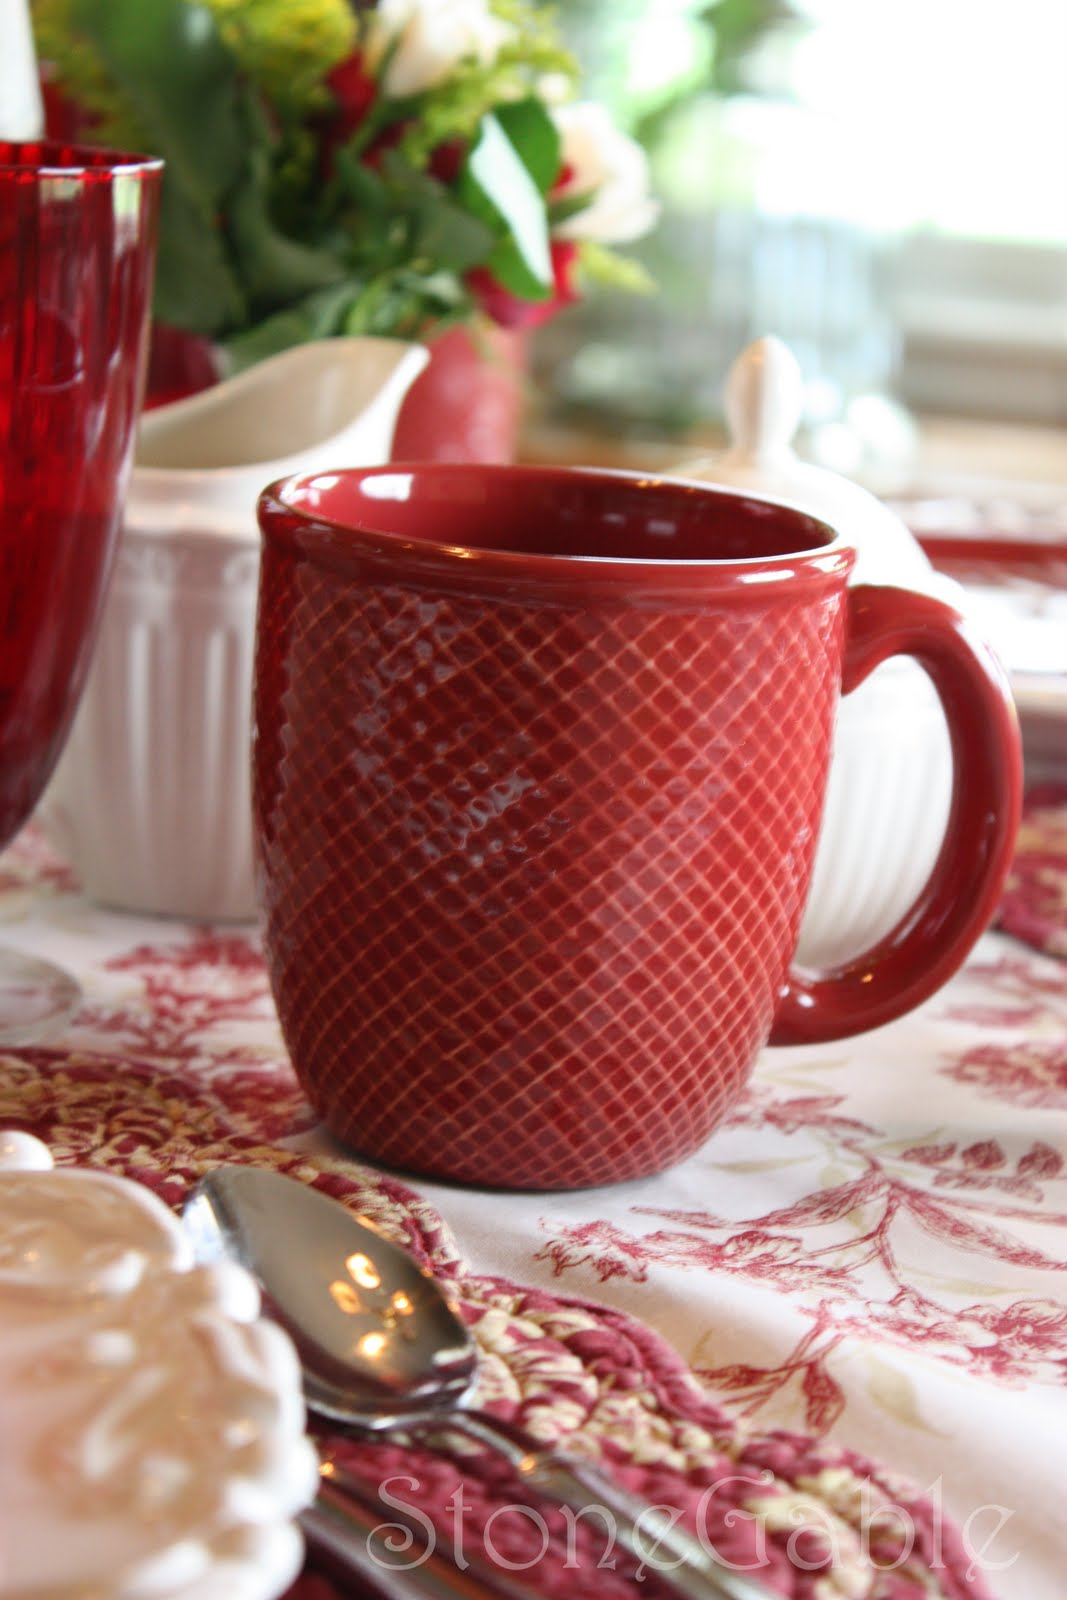 ... (Jaclyn Smith Collection Kmart) match the salad plates. These mugs have a subtle raised diamond checked pattern. Like the salad plates the quality of ... & Roosters Roses and Red - StoneGable